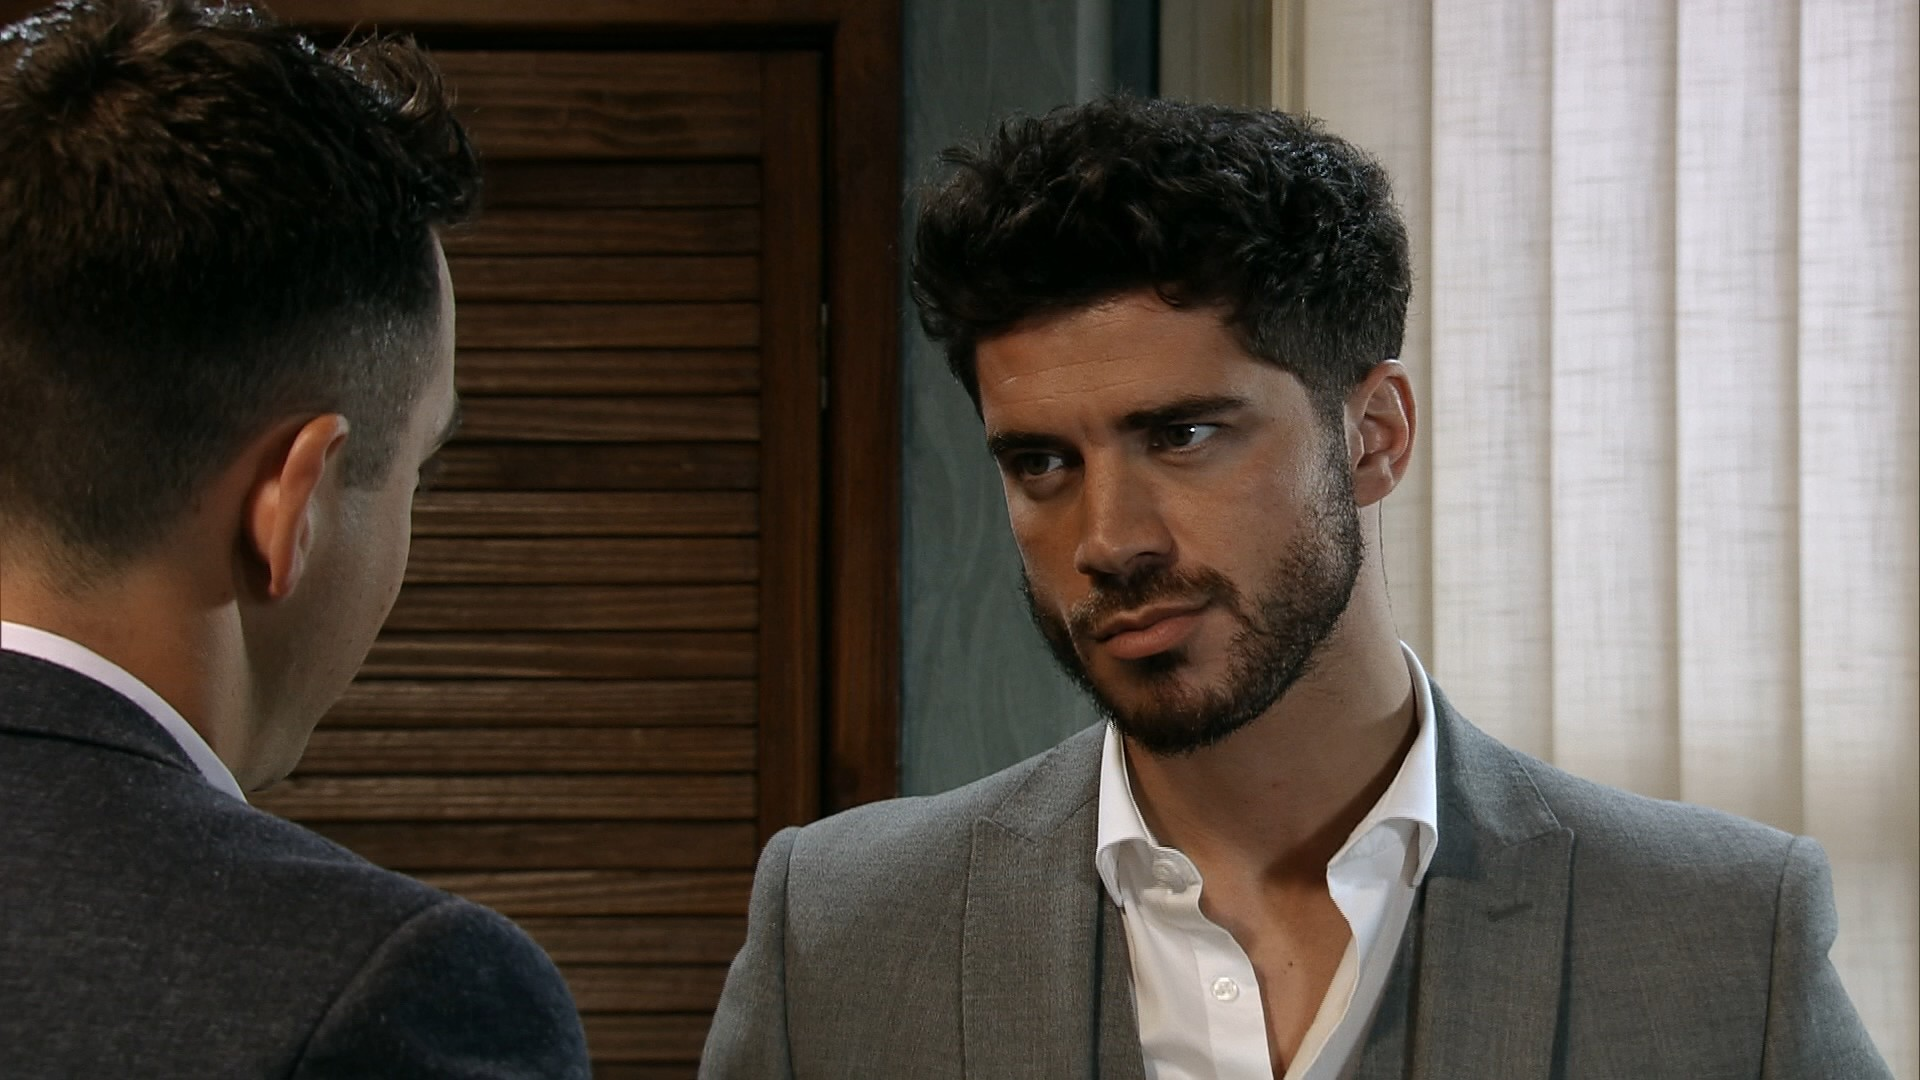 CORRIE 9260 WEDS 27TH SEPT 2030 PREVIEW CLIP